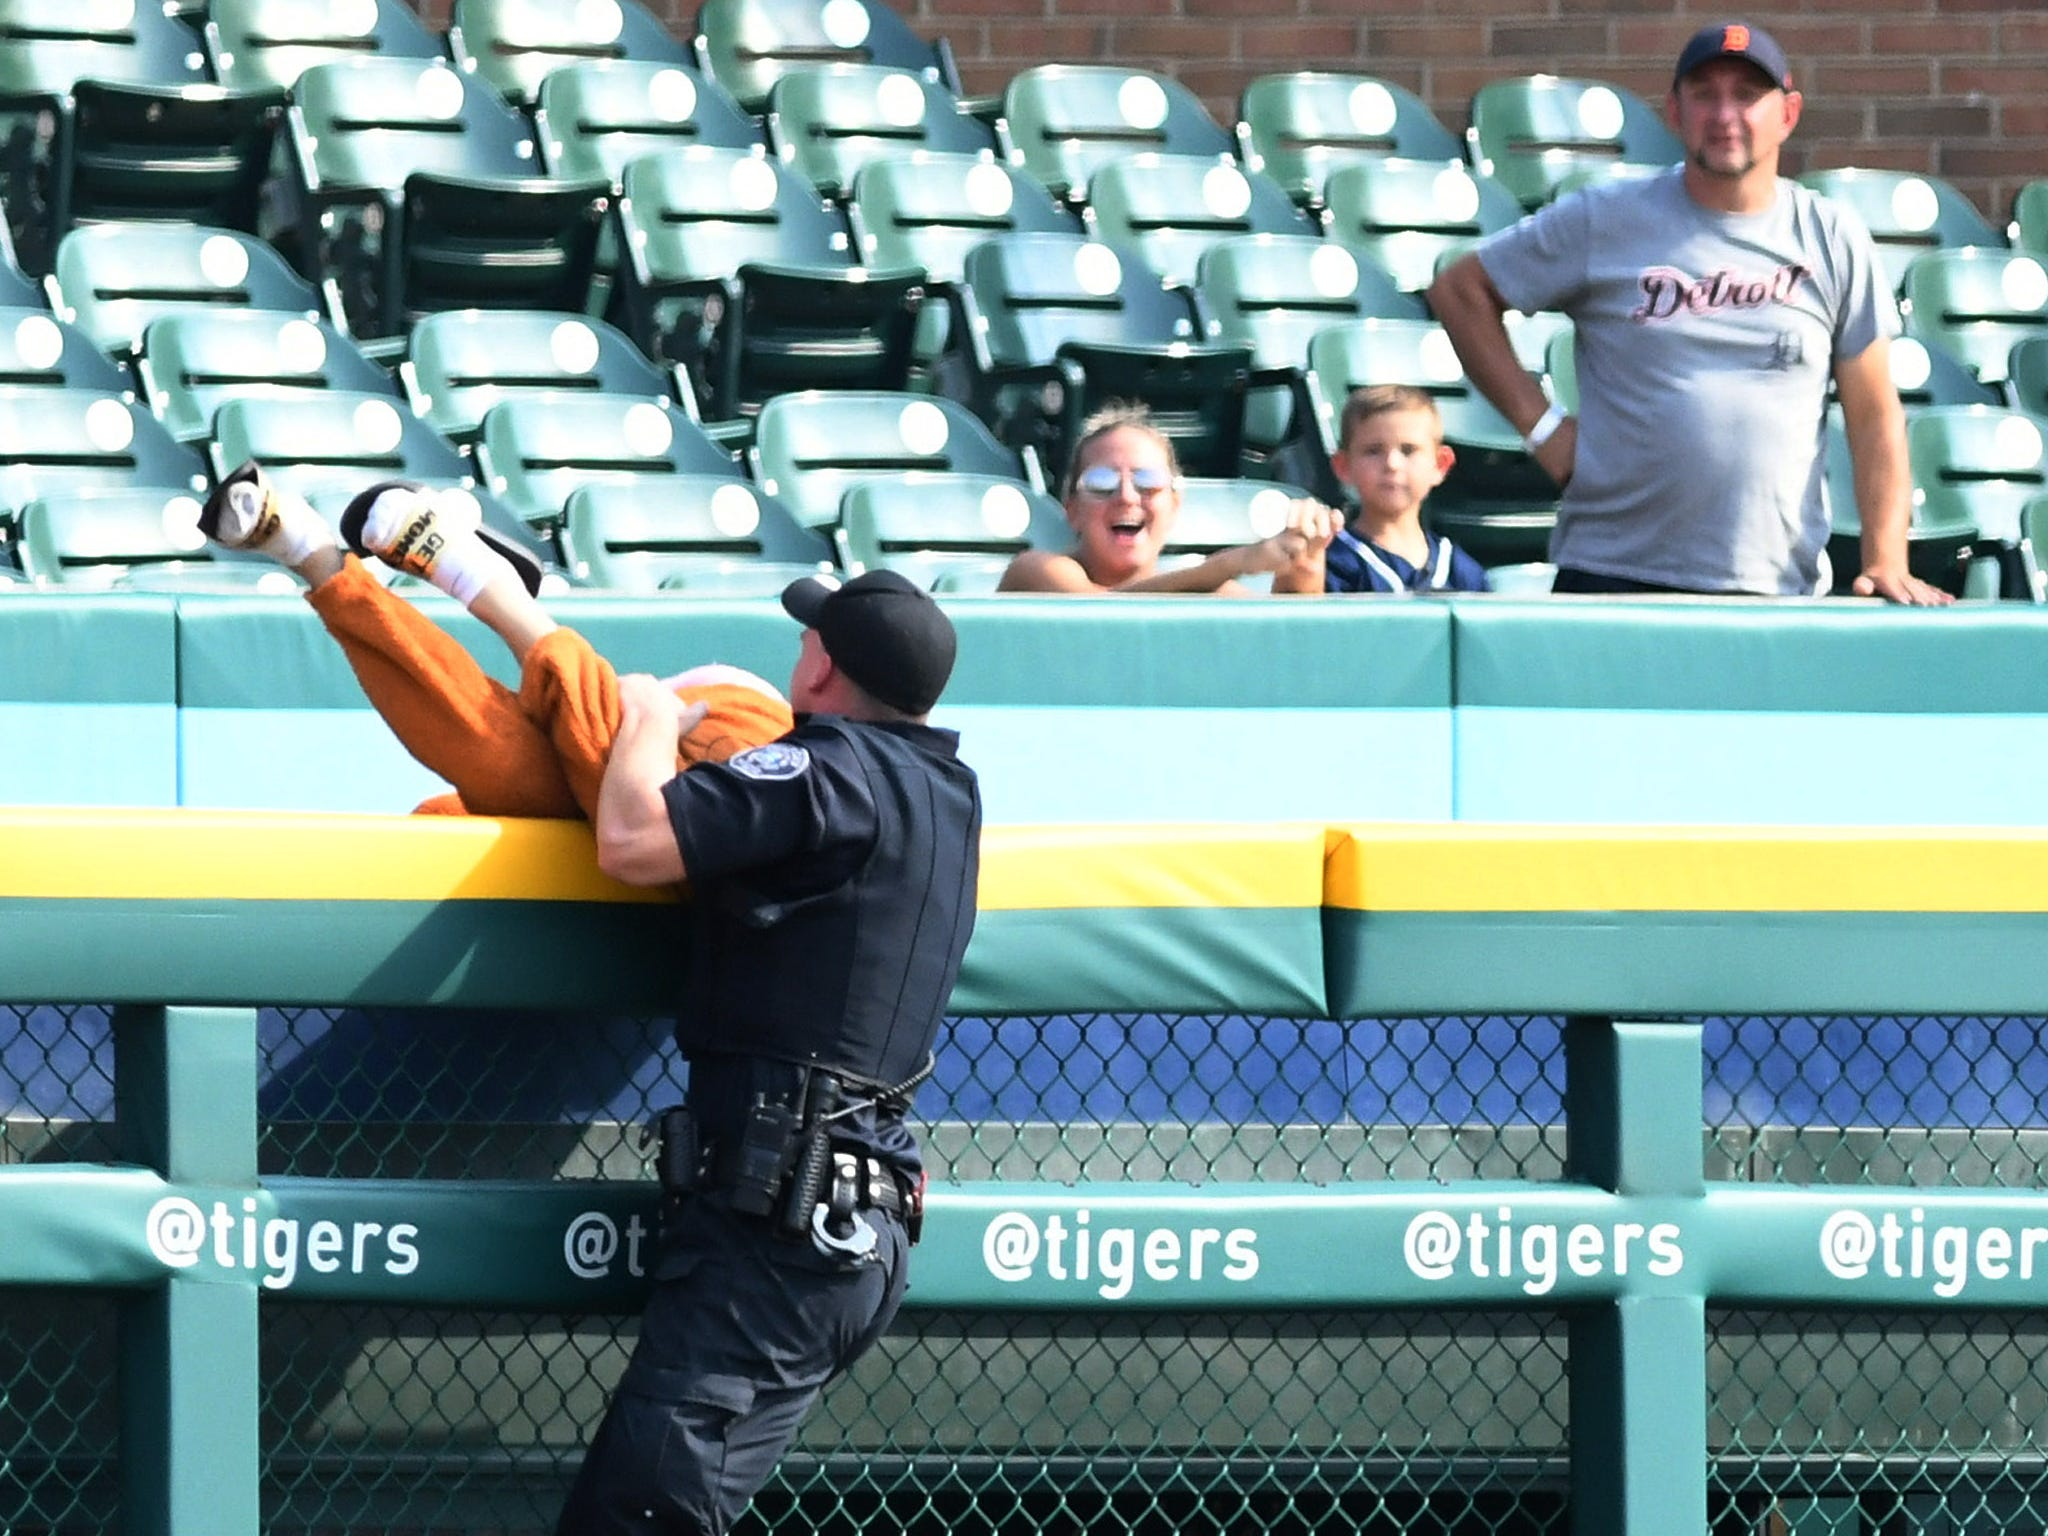 At the visiting bullpen wall, a Detroit police officer catches up with a man who ran onto the field in the ninth inning of a Tigers game against Minnesota Twins at Comerica Park in Detroit on Sept. 19, 2018.